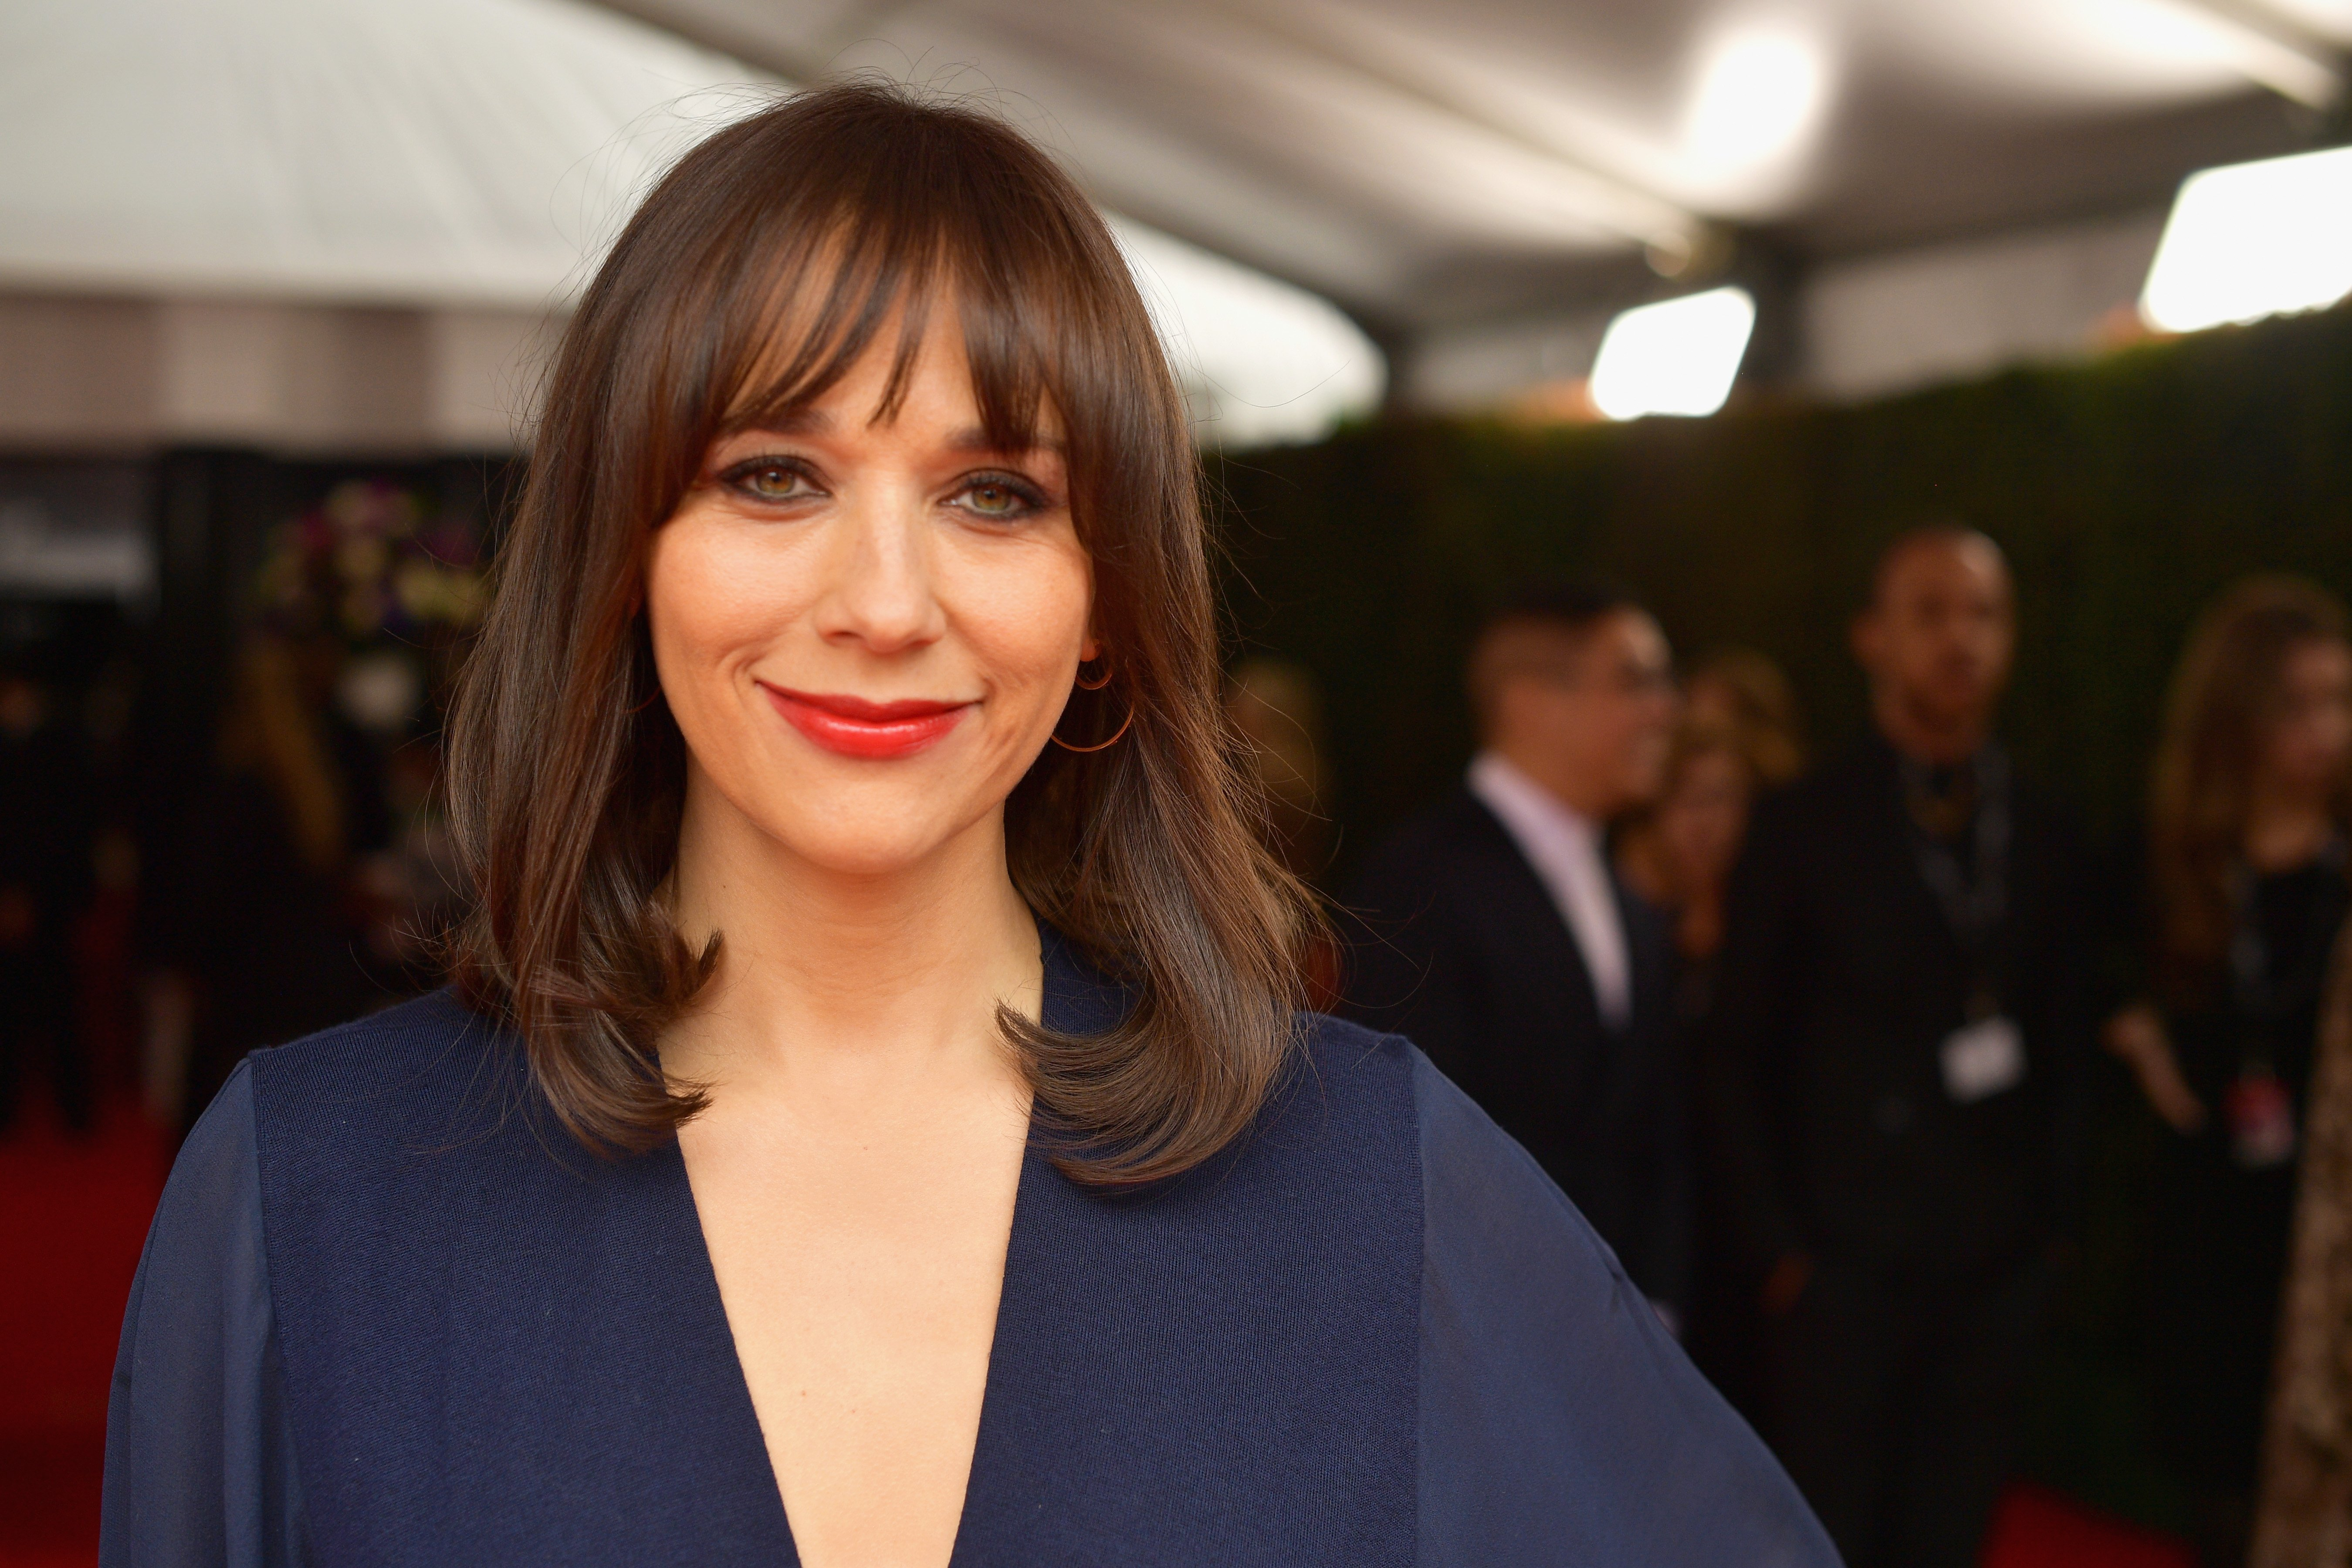 Rashida Jones at Staples Center on February 10, 2019 in Los Angeles, California | Source: Getty Images